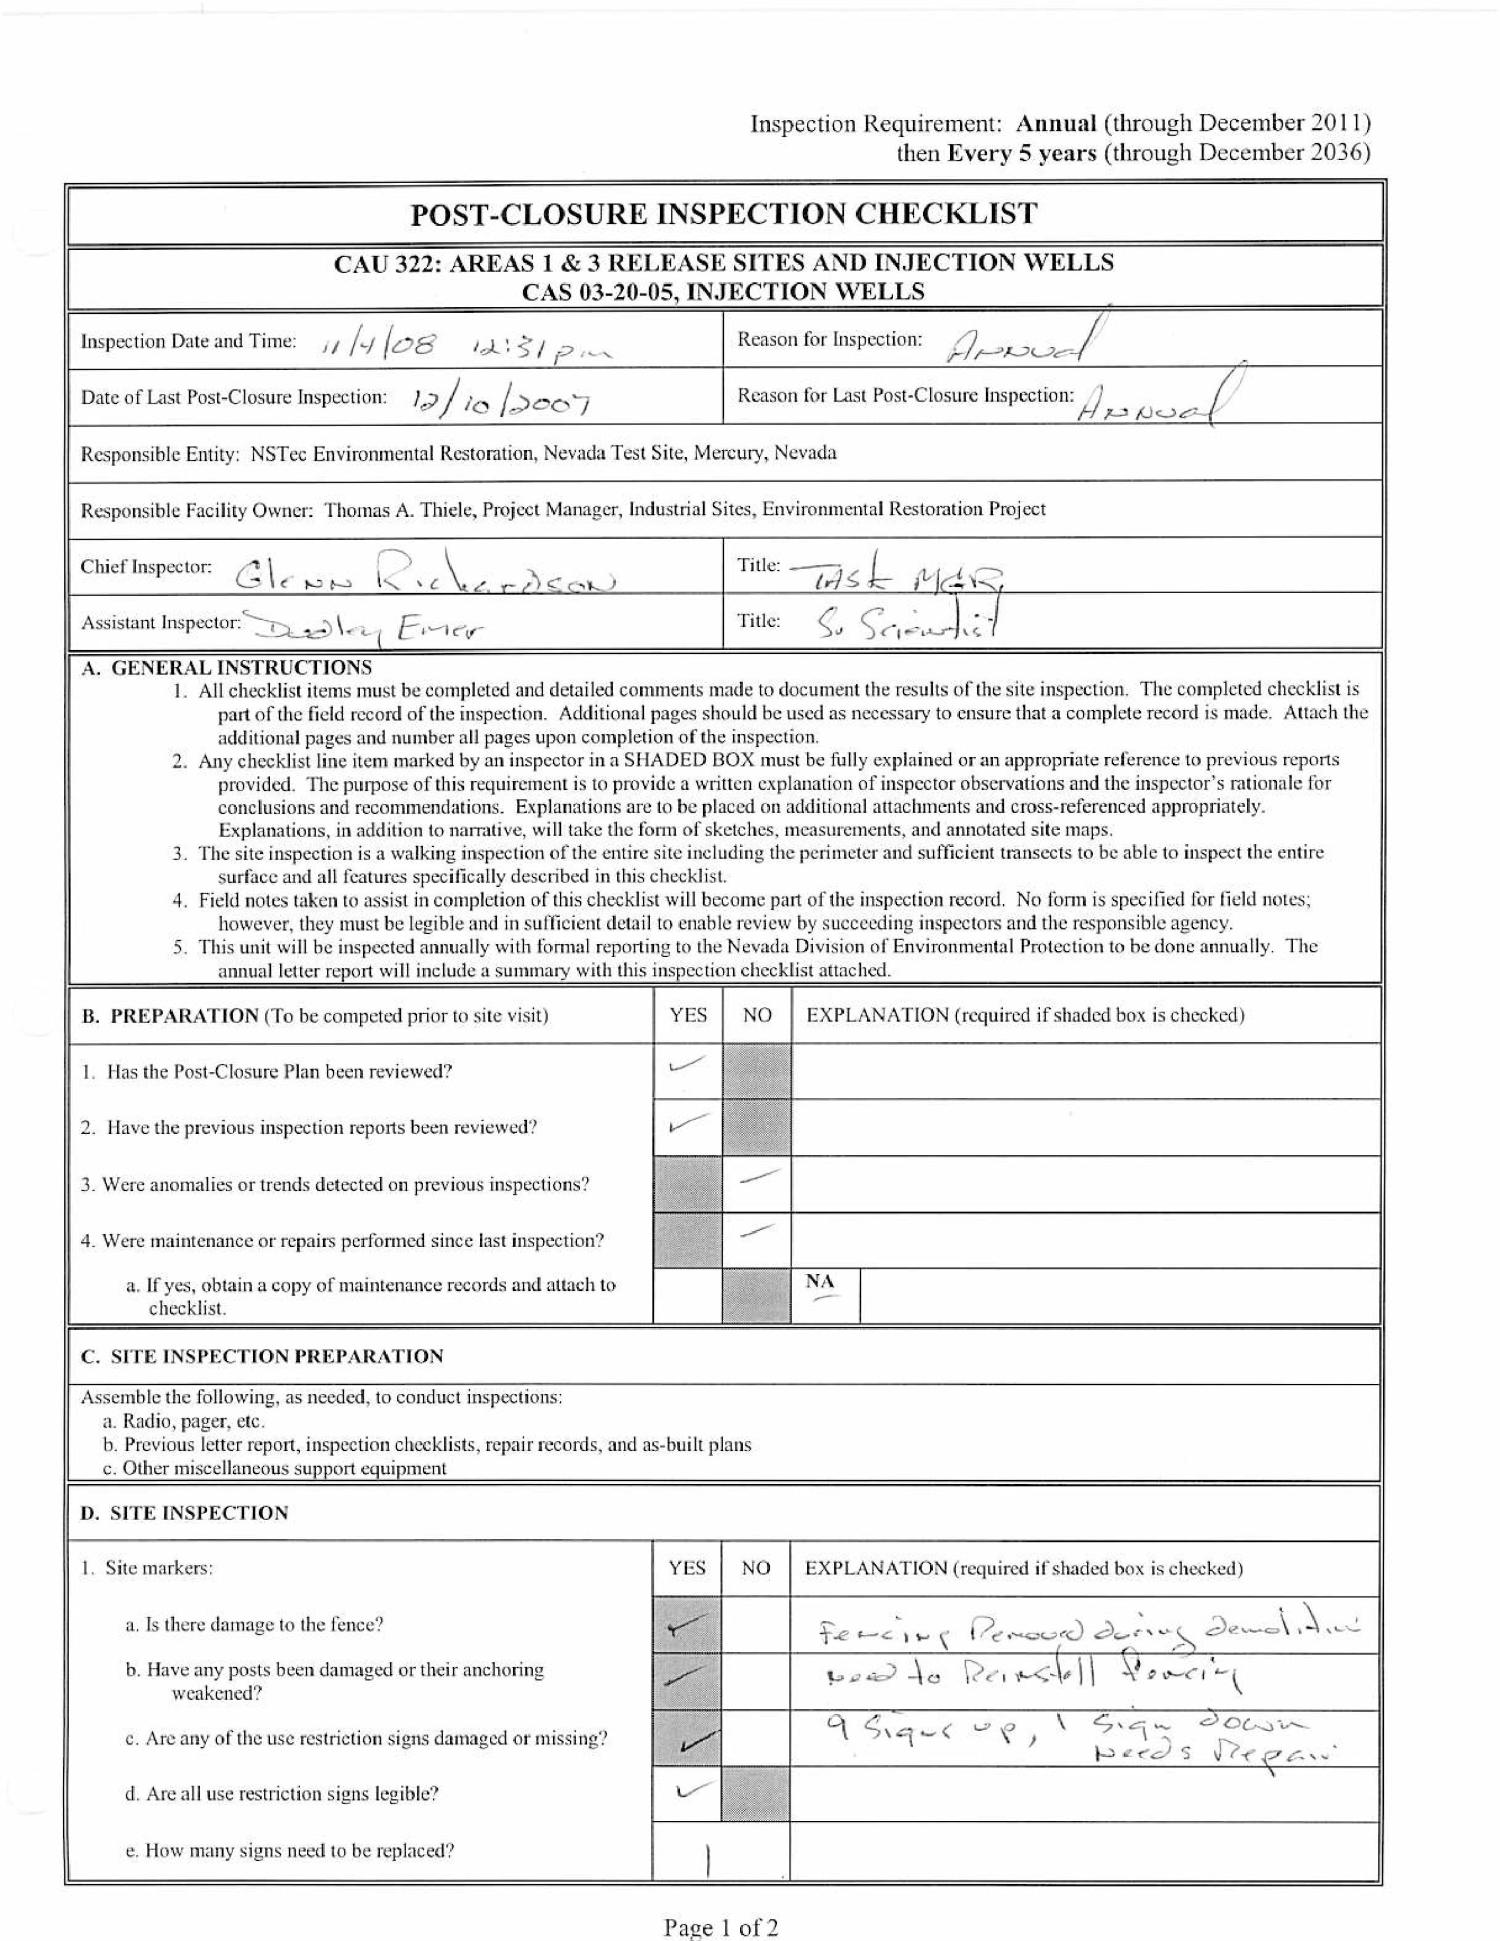 Post-Closure Inspection Letter Report for Corrective Action